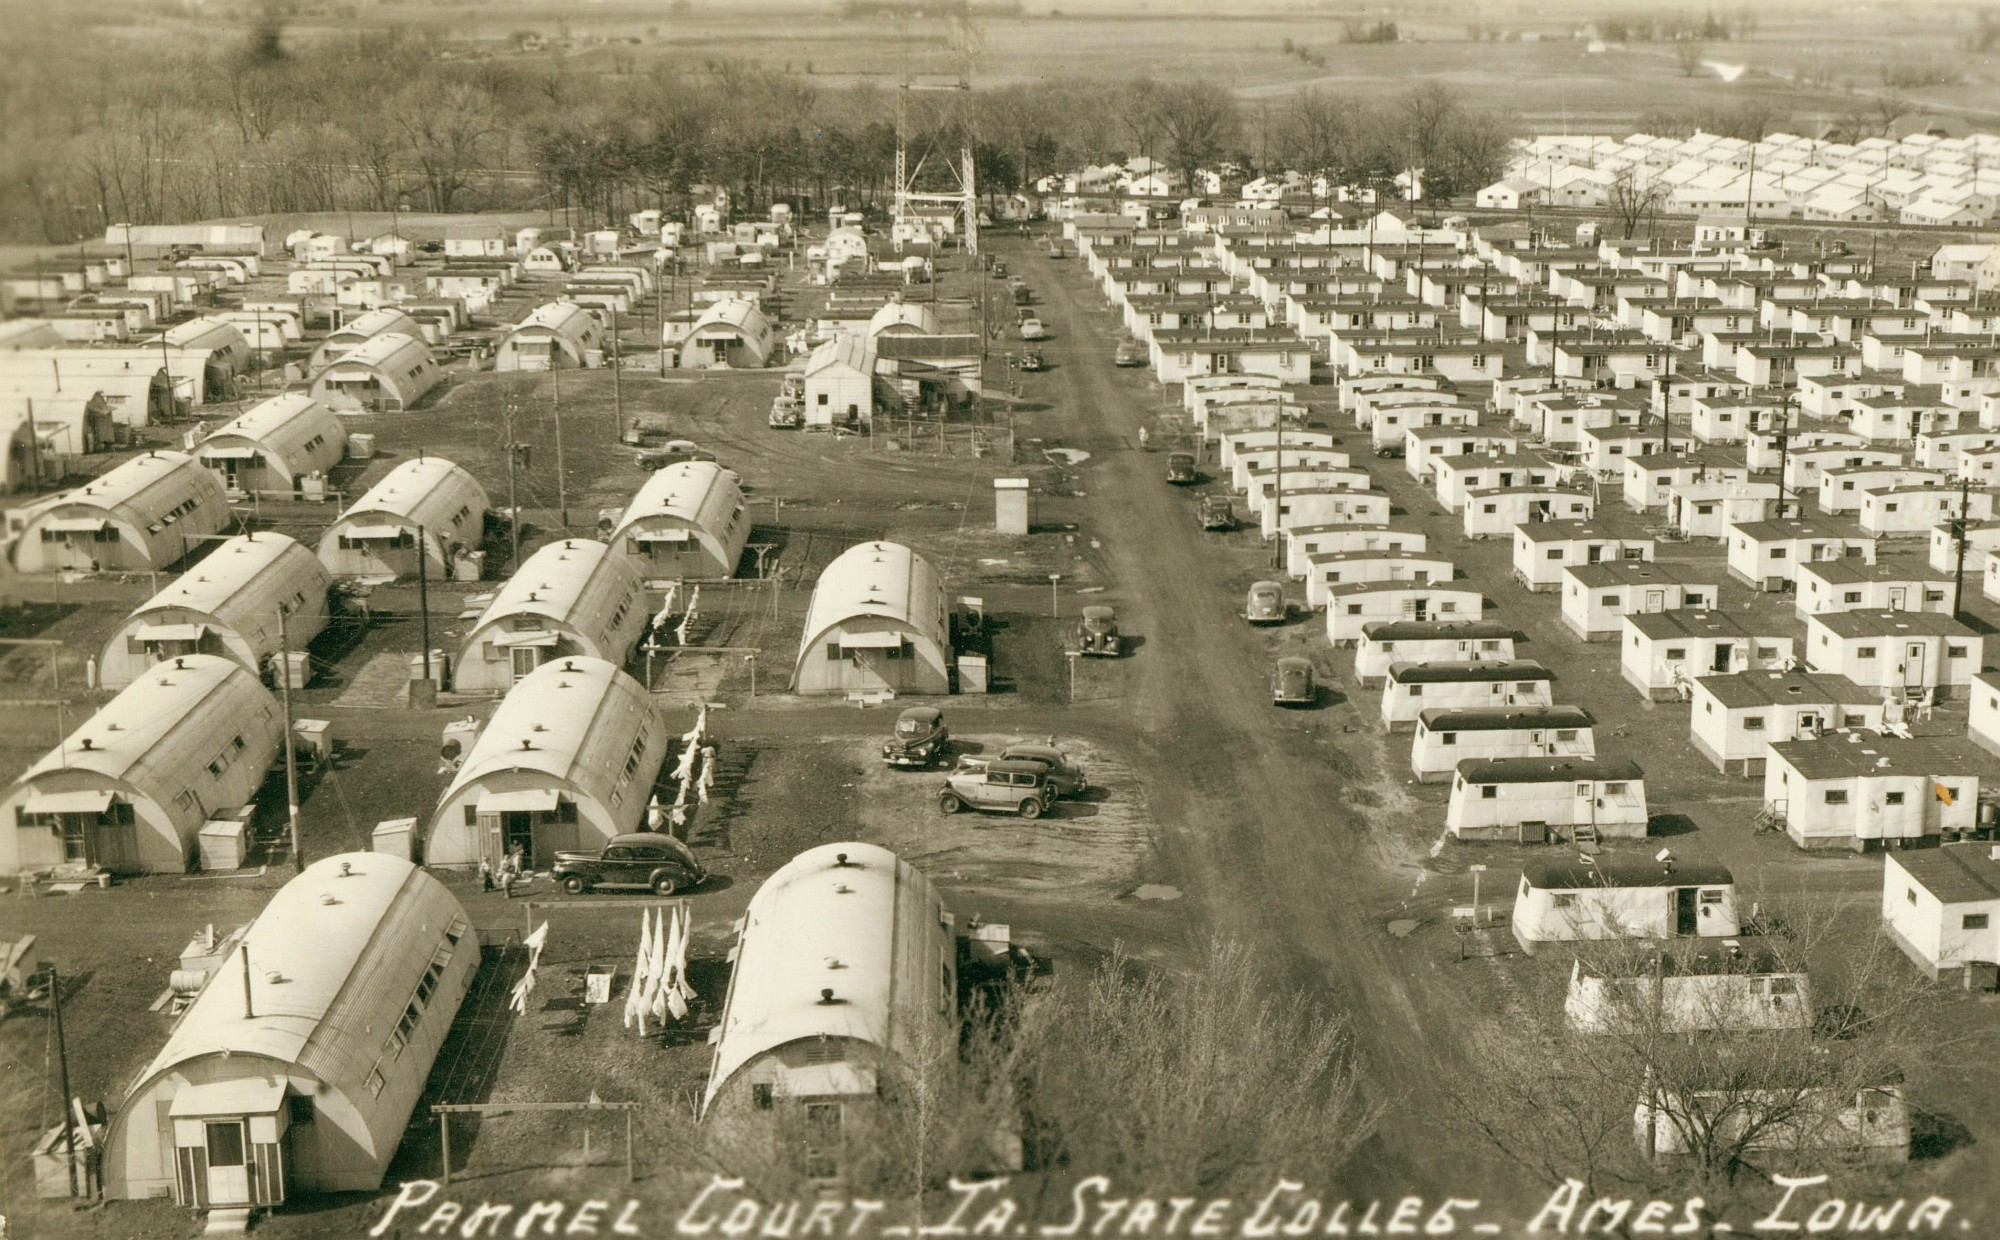 A view of Pammel Court, married housing area in Ames.